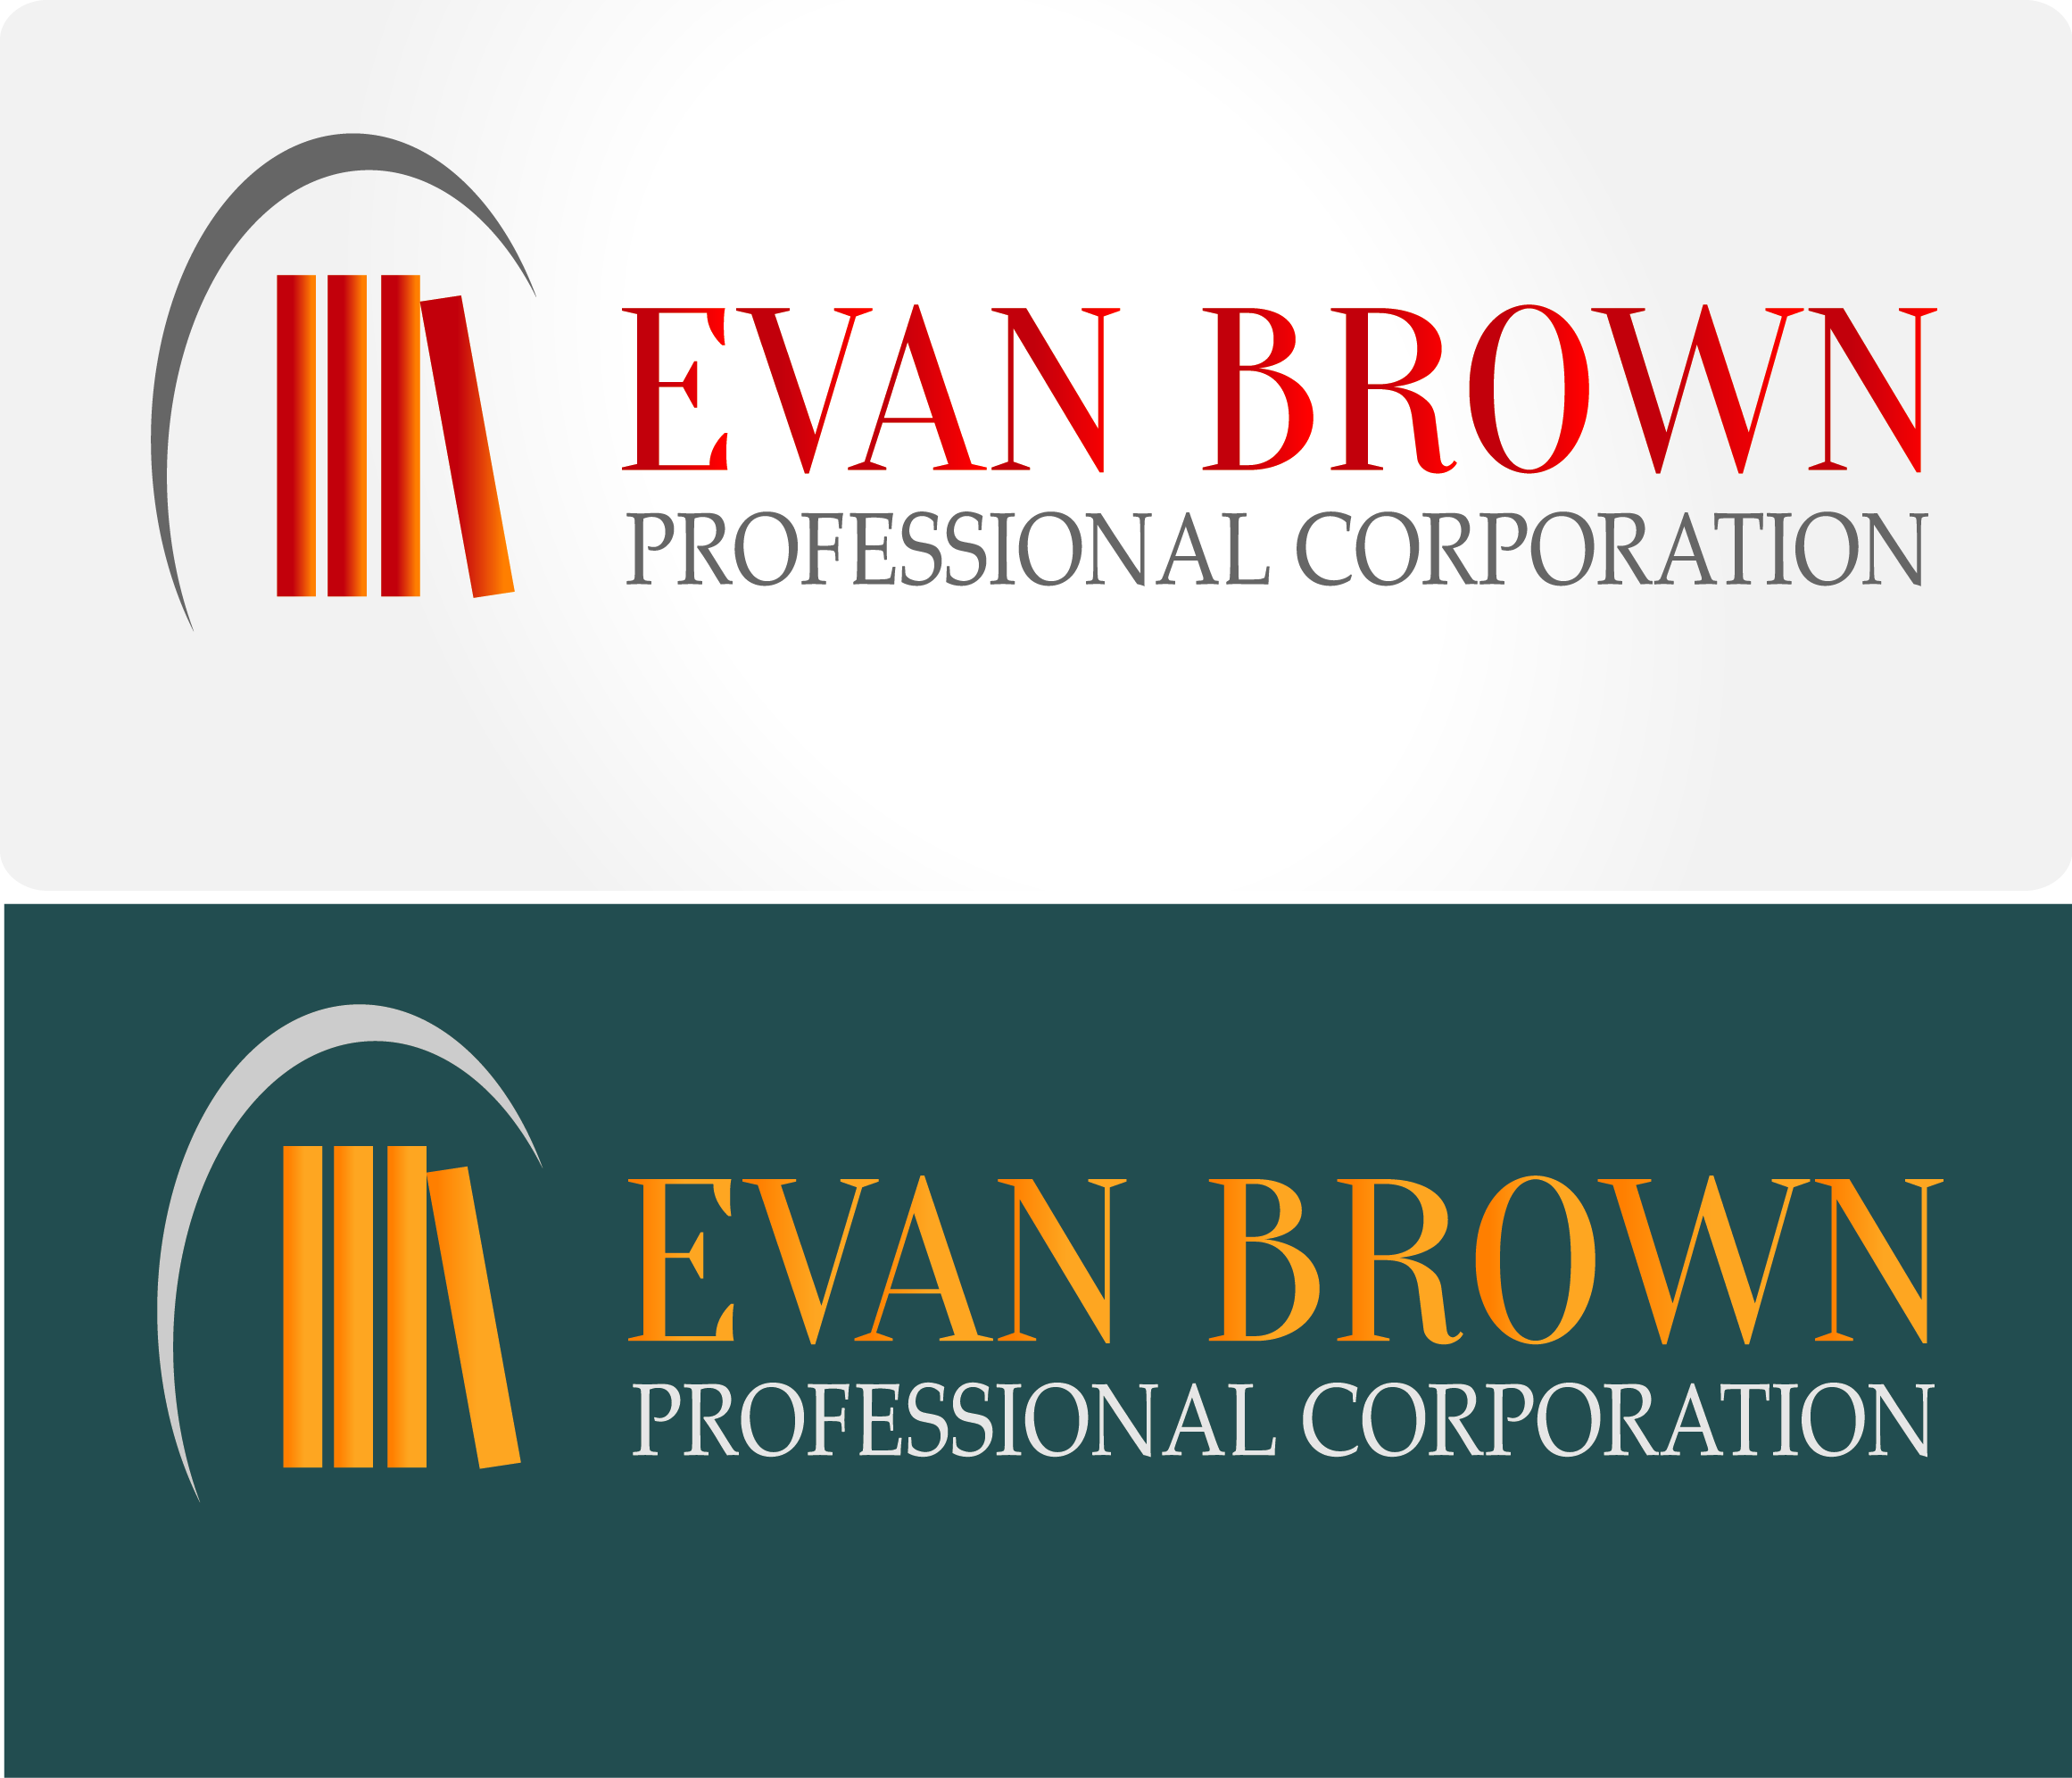 Logo Design by Maninder pal Singh - Entry No. 84 in the Logo Design Contest Inspiring Logo Design for Evan Brown Professional Corporation.